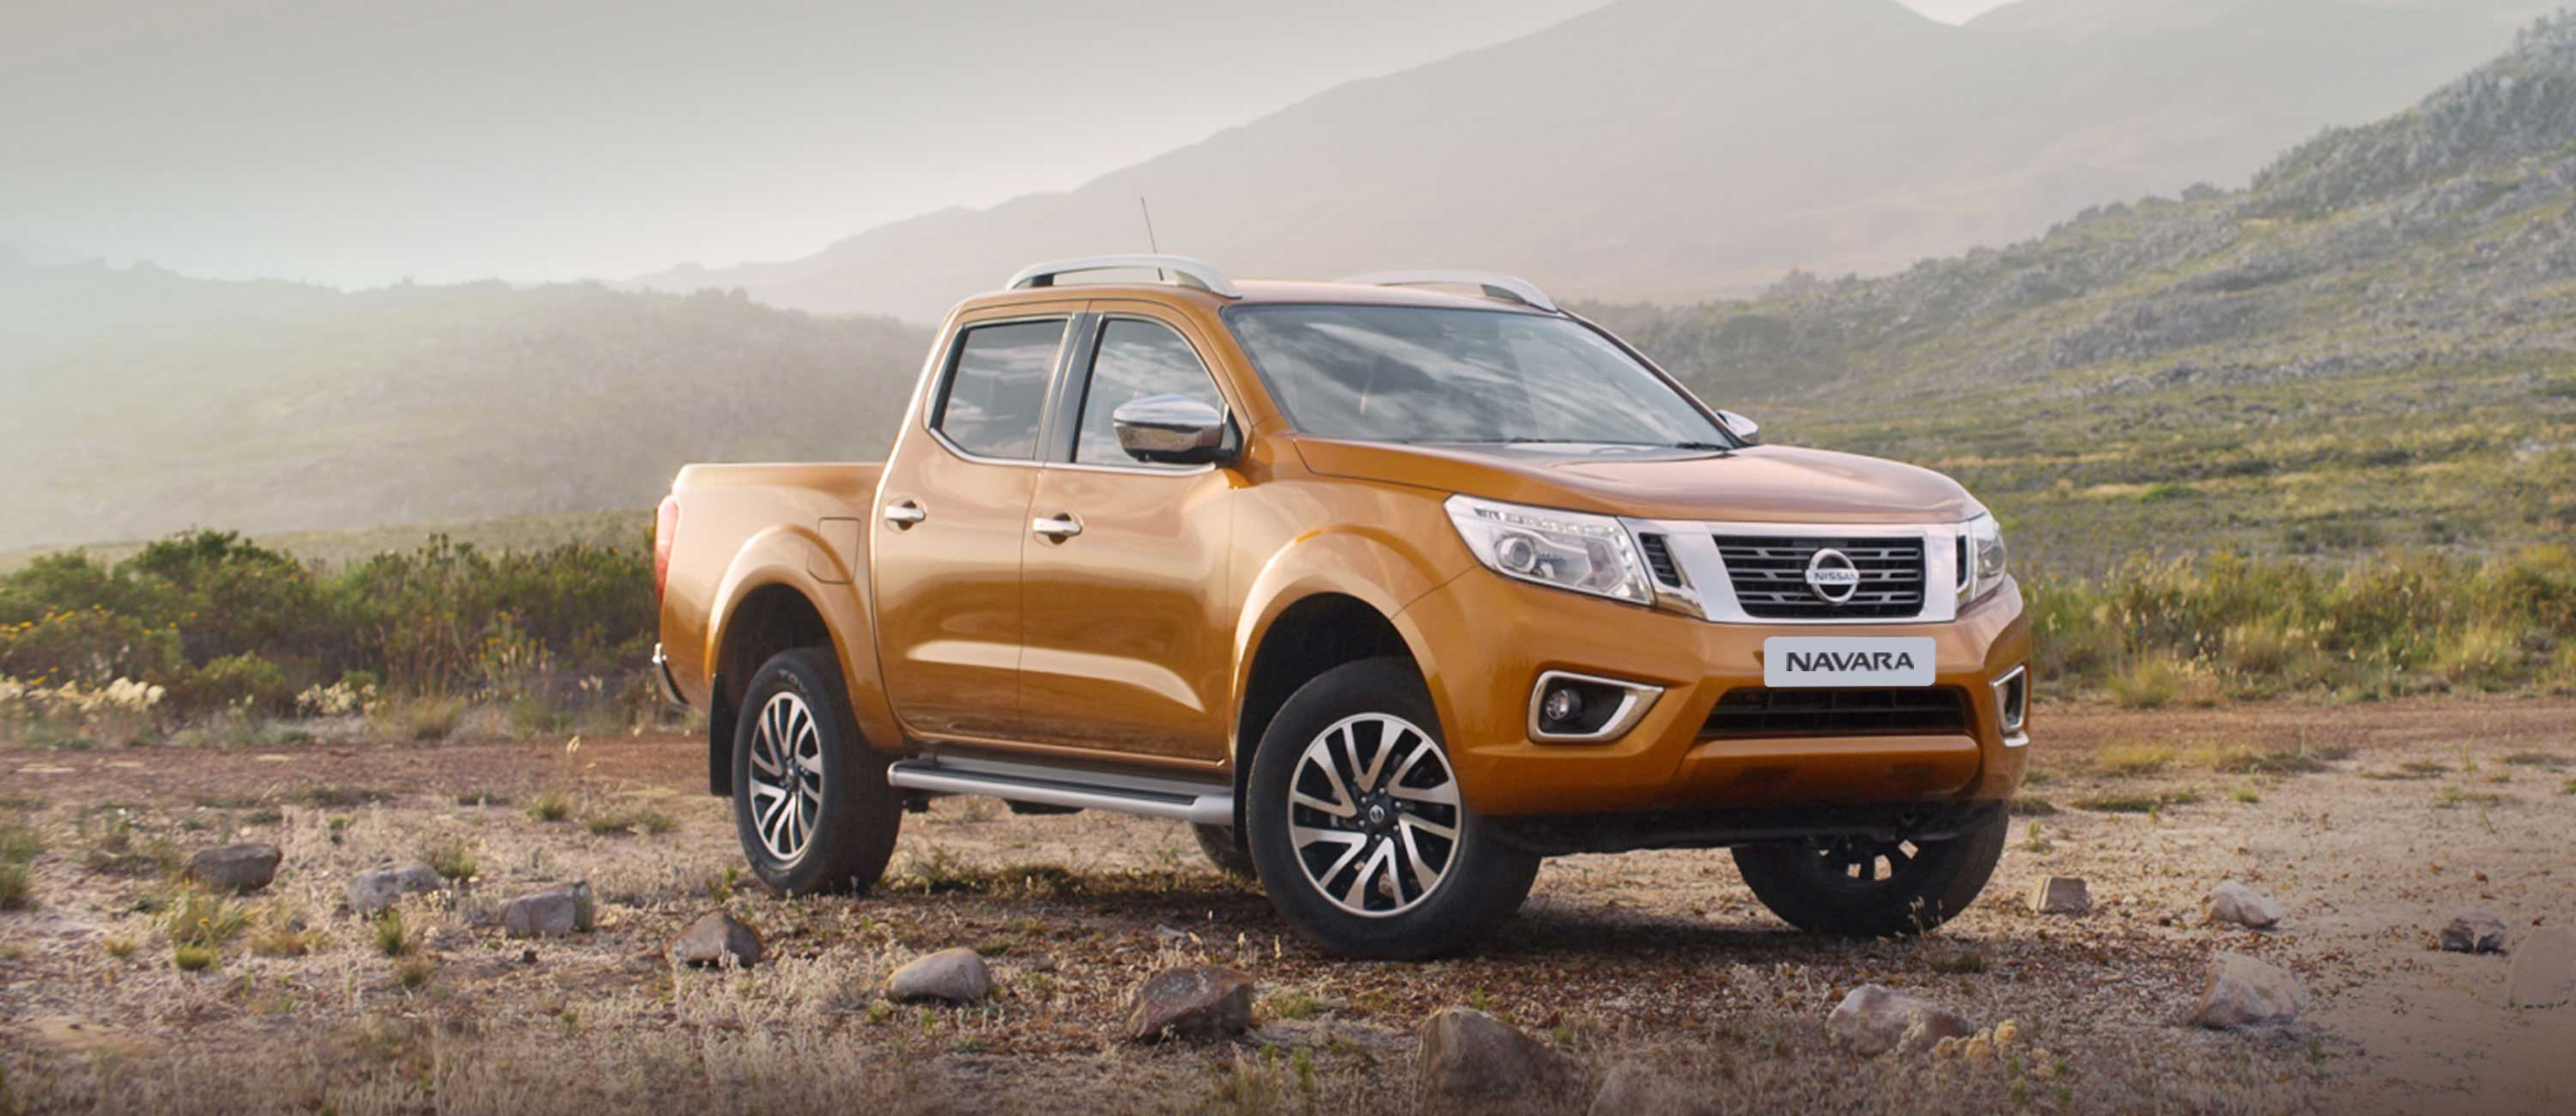 Nissan Navara - for whatever your day looks like